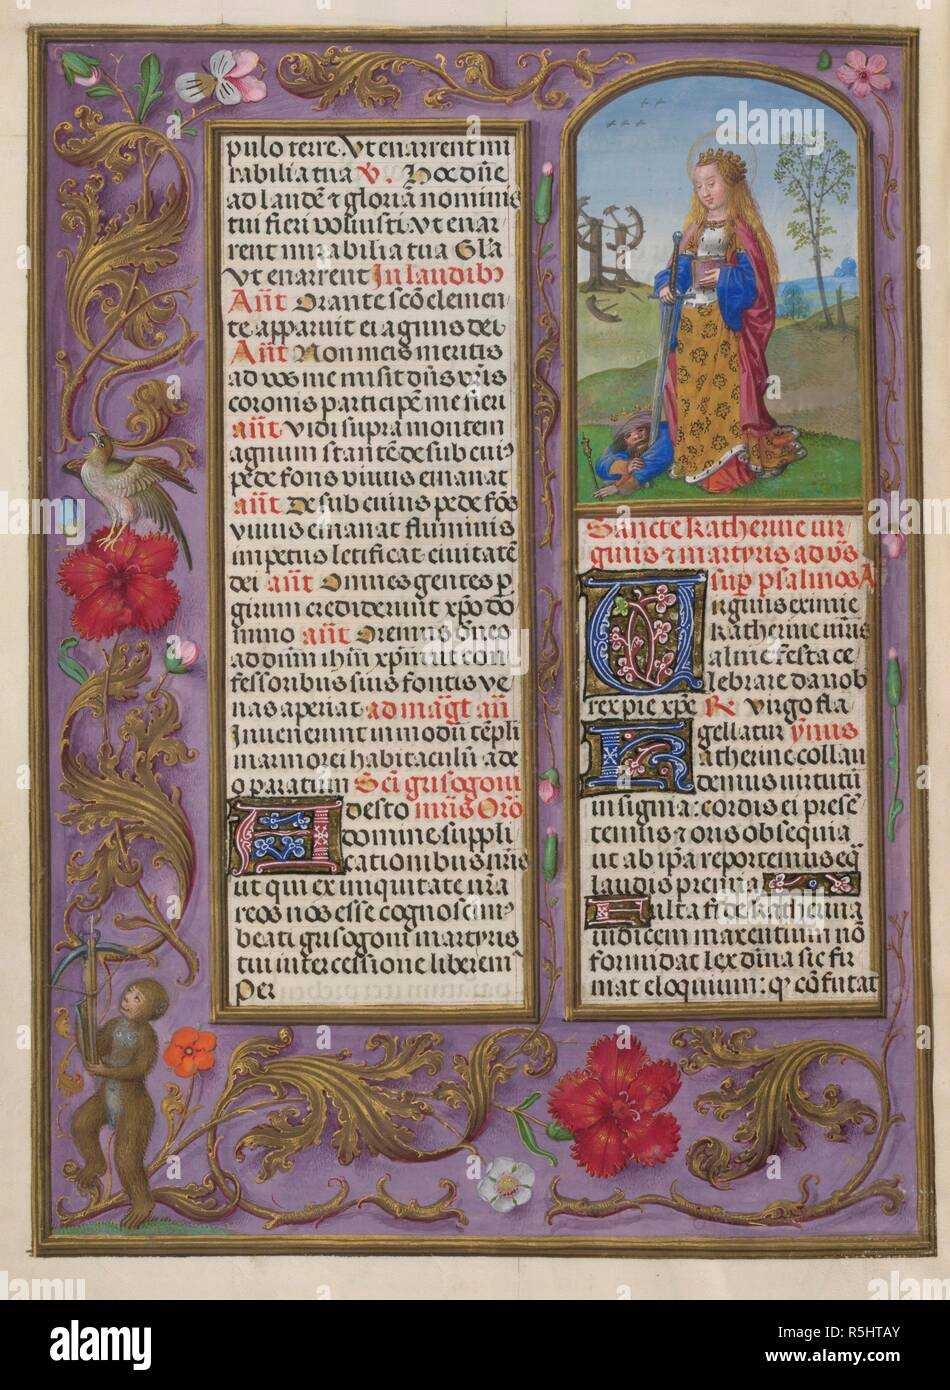 Sanctorale. St Catherine. Isabella Breviary. Breviary, Use of the Dominicans ('The Breviary of Queen Isabella of Castile'). c1497. Source: Add. 18851 f.495v. Author: Master of James IV of Scotland. - Stock Image